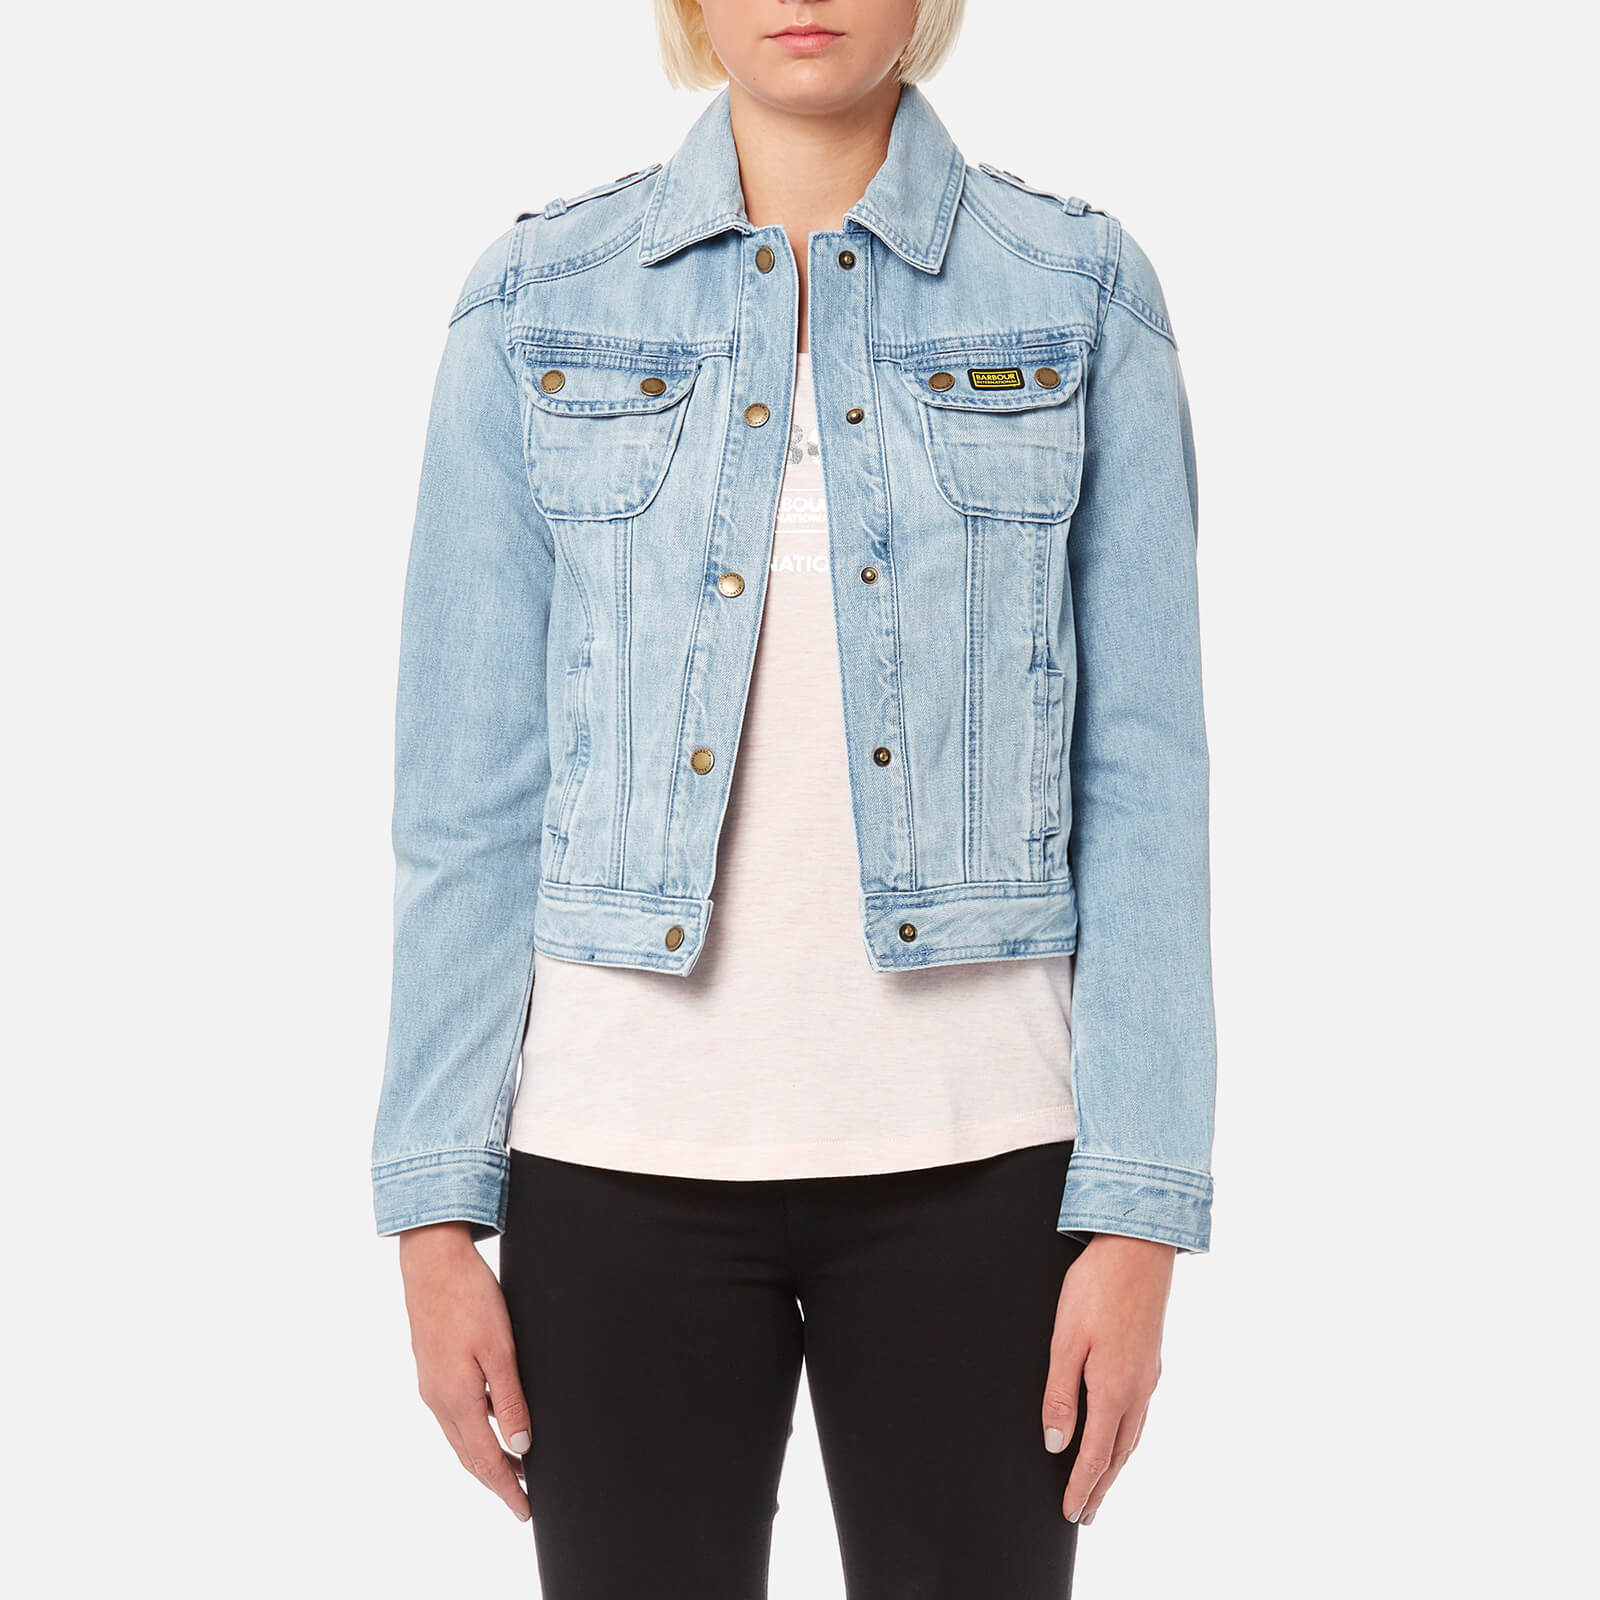 2505ad33d6 Barbour International Women s Durness Casual Denim Jacket - Bleached - Free  UK Delivery over £50